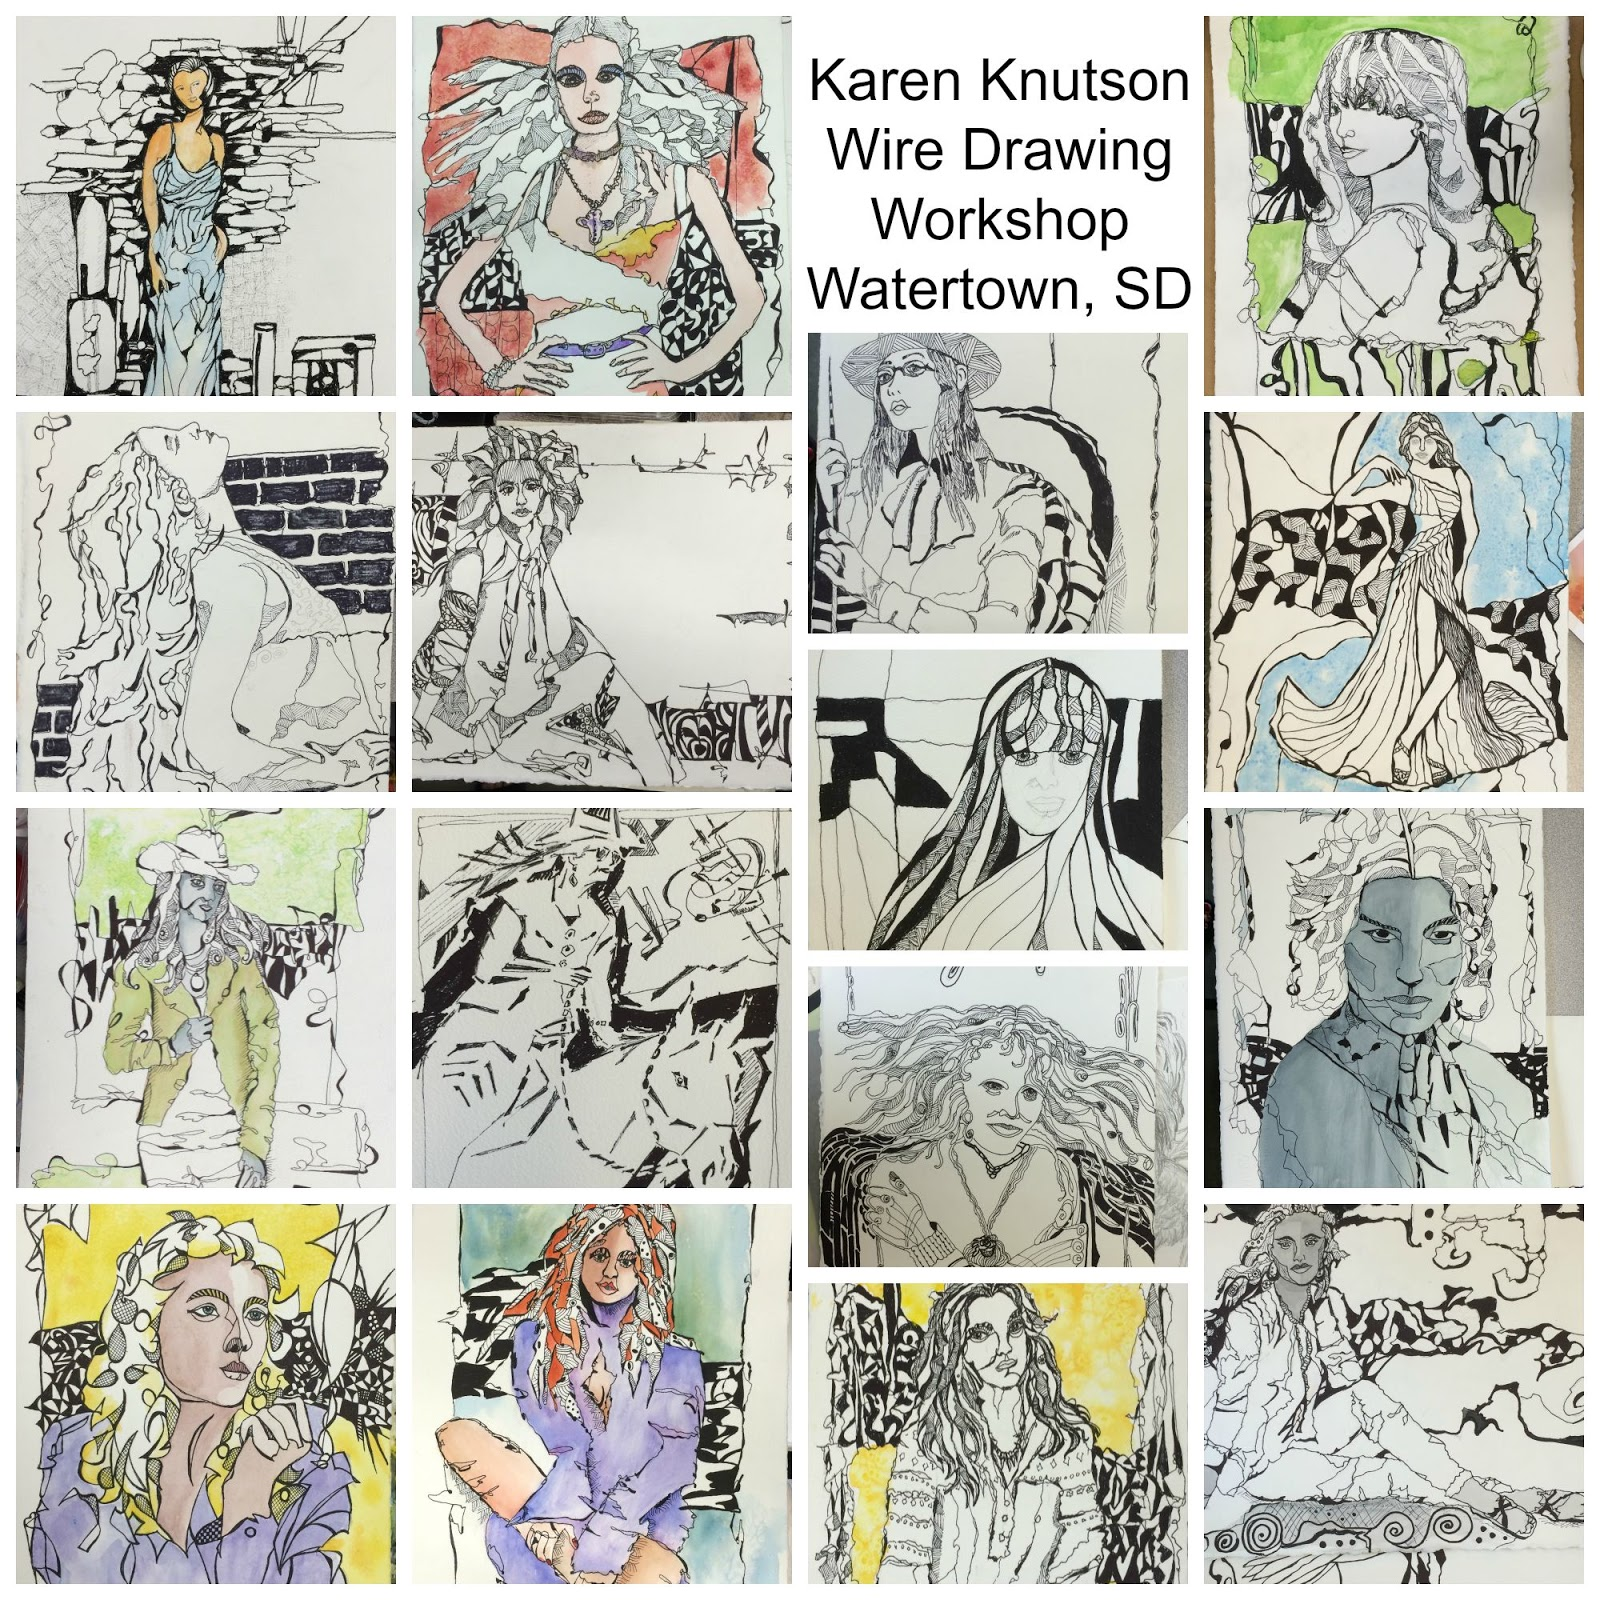 Wild About Painting By Karen Knutson Dont Talk To Me Before 800 How Wire A Workshop My Next Drawing Is At The White Bear Lakes Center For Arts On Nov 3 5 Sign Up Now If Interested In Learning This Process